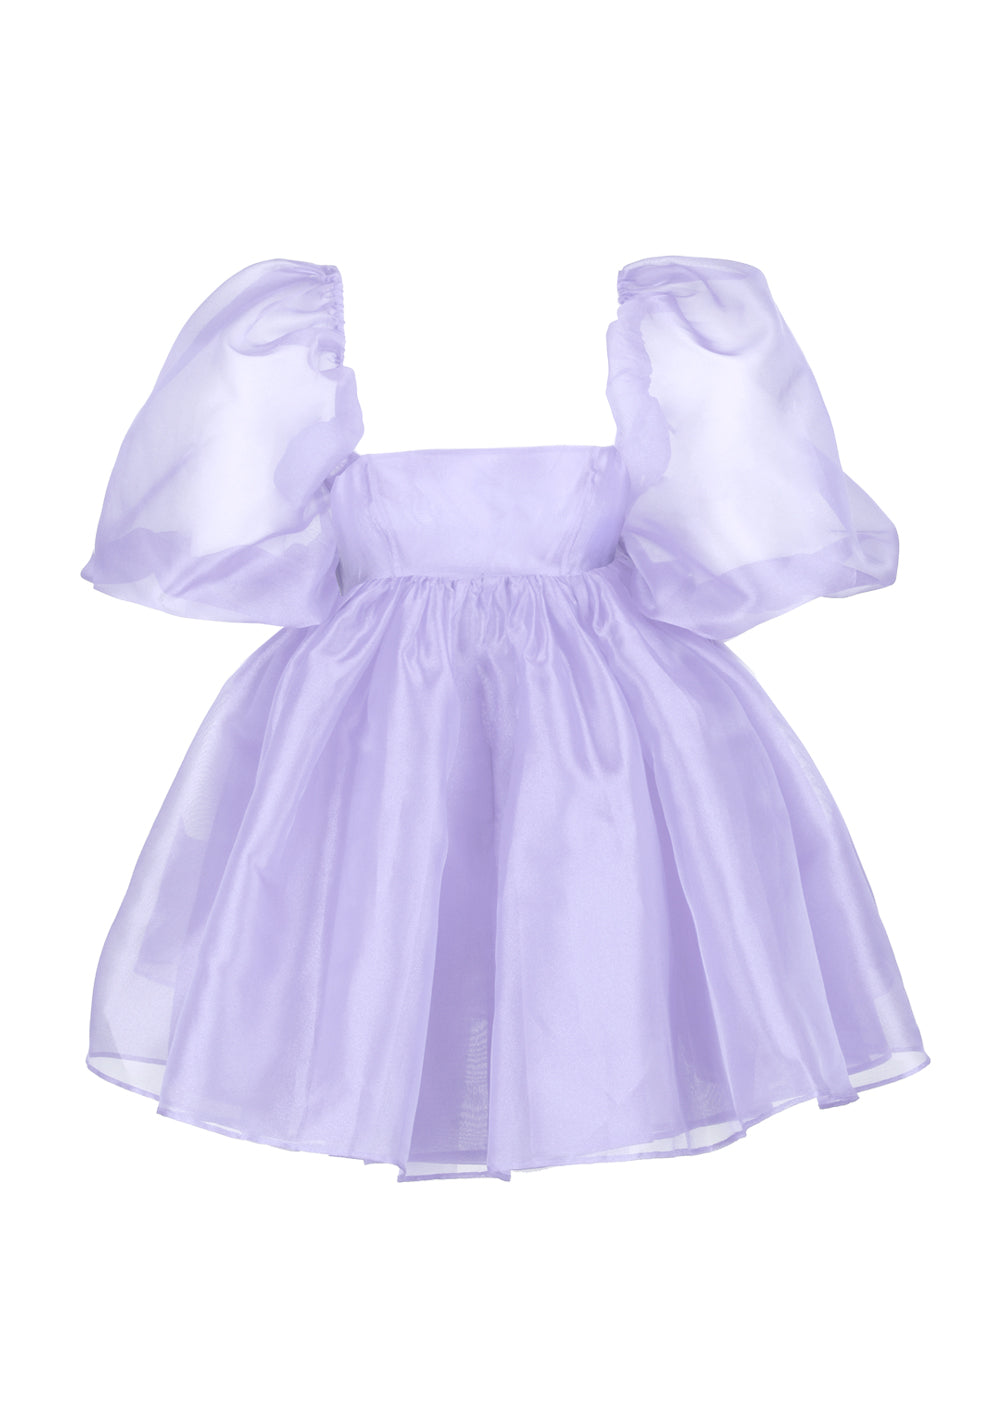 The Lilac Puff Dress * Pre Order*